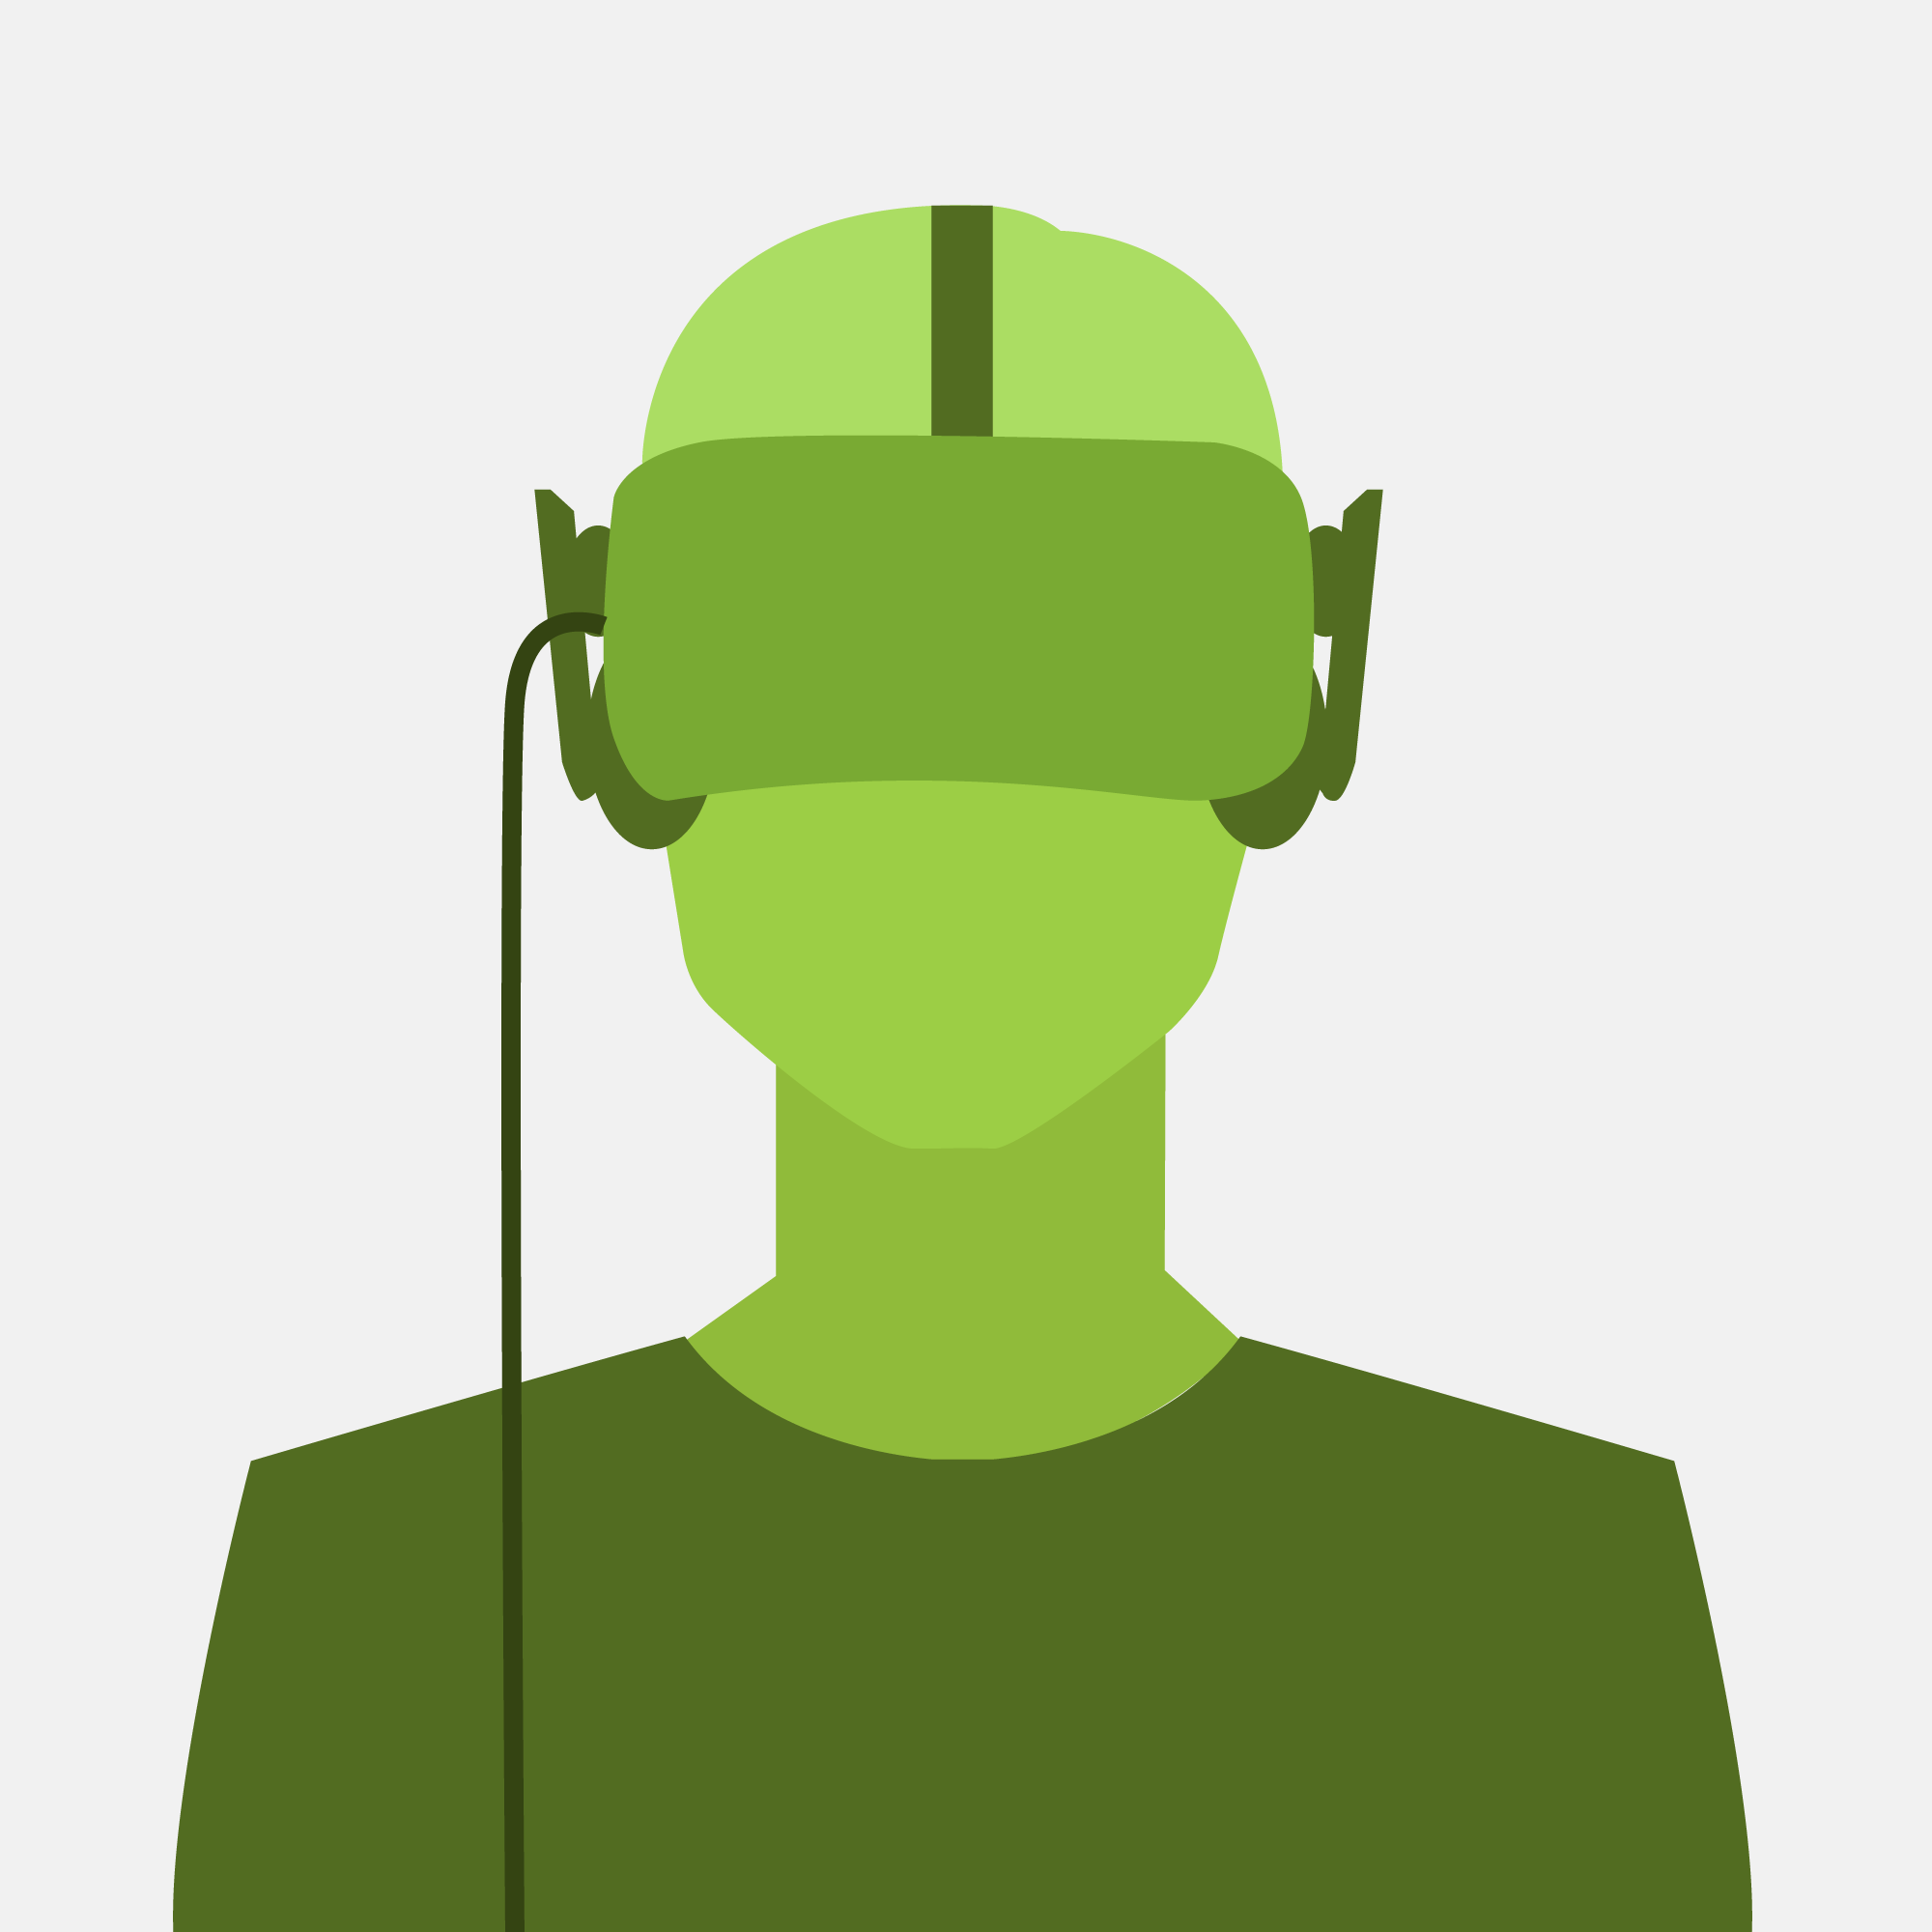 virtual_reality_device_line_icon_concept_vr_gaming_user_display_human_headset_wearing_vector_illustration-530x450.jpg